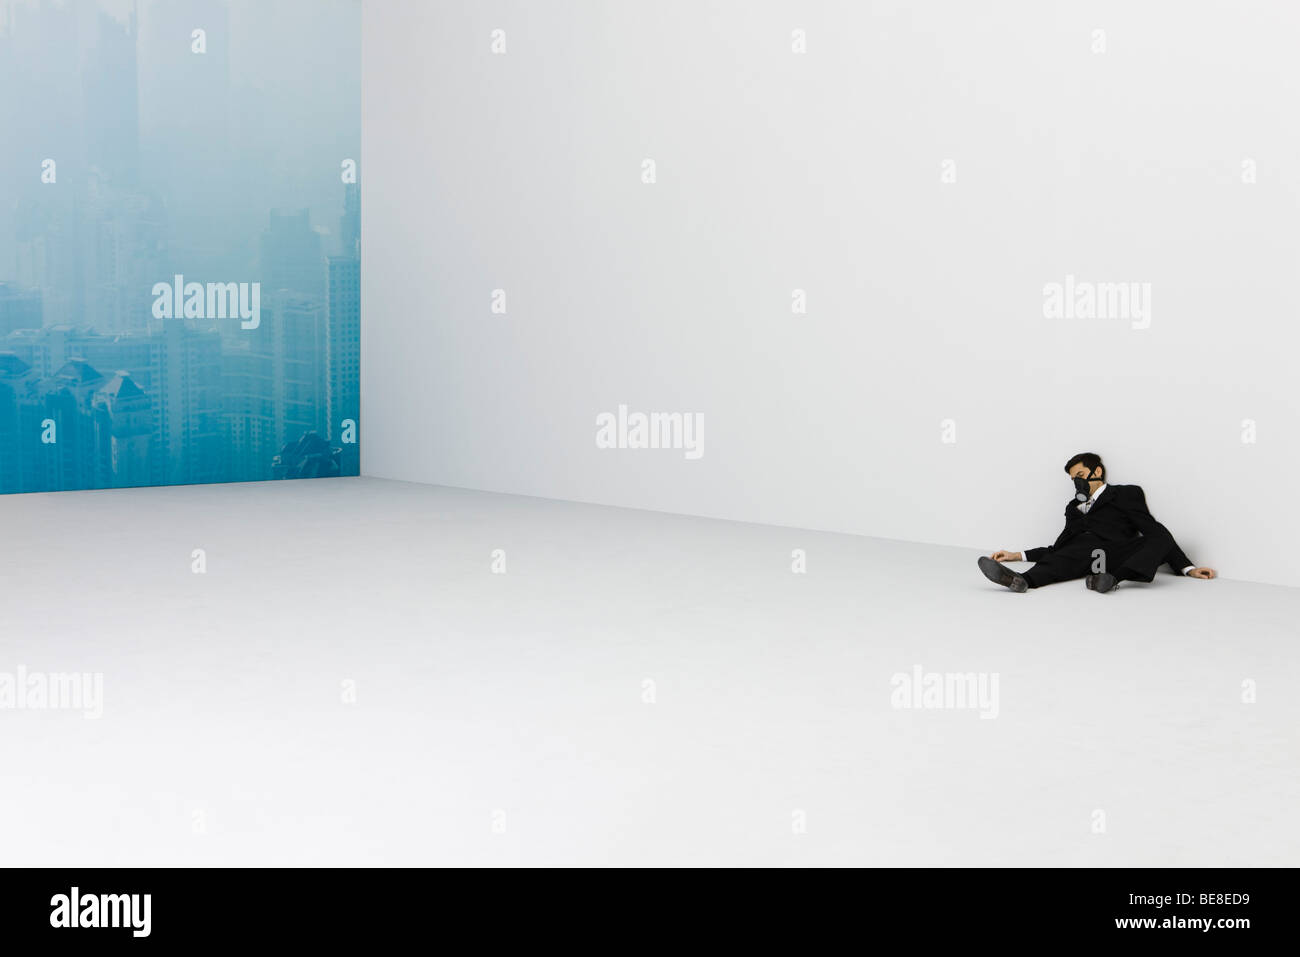 Businessman lying on floor, wearing gas mask, cityscape obscured by smog in background - Stock Image